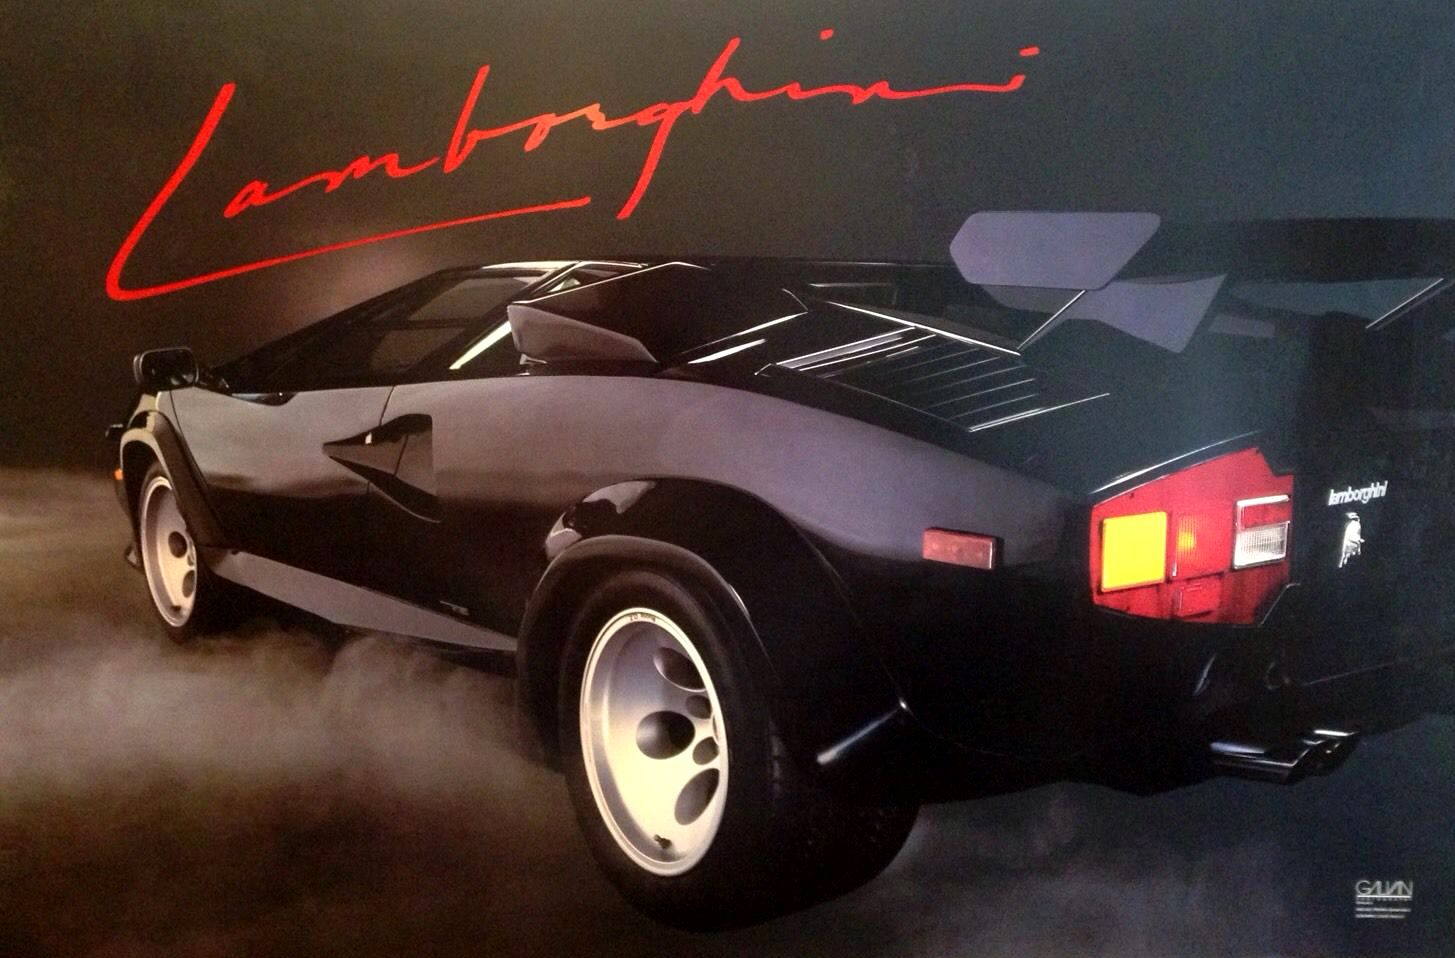 Original Poster 1986 Lamborghini Countach Retro 80s Design